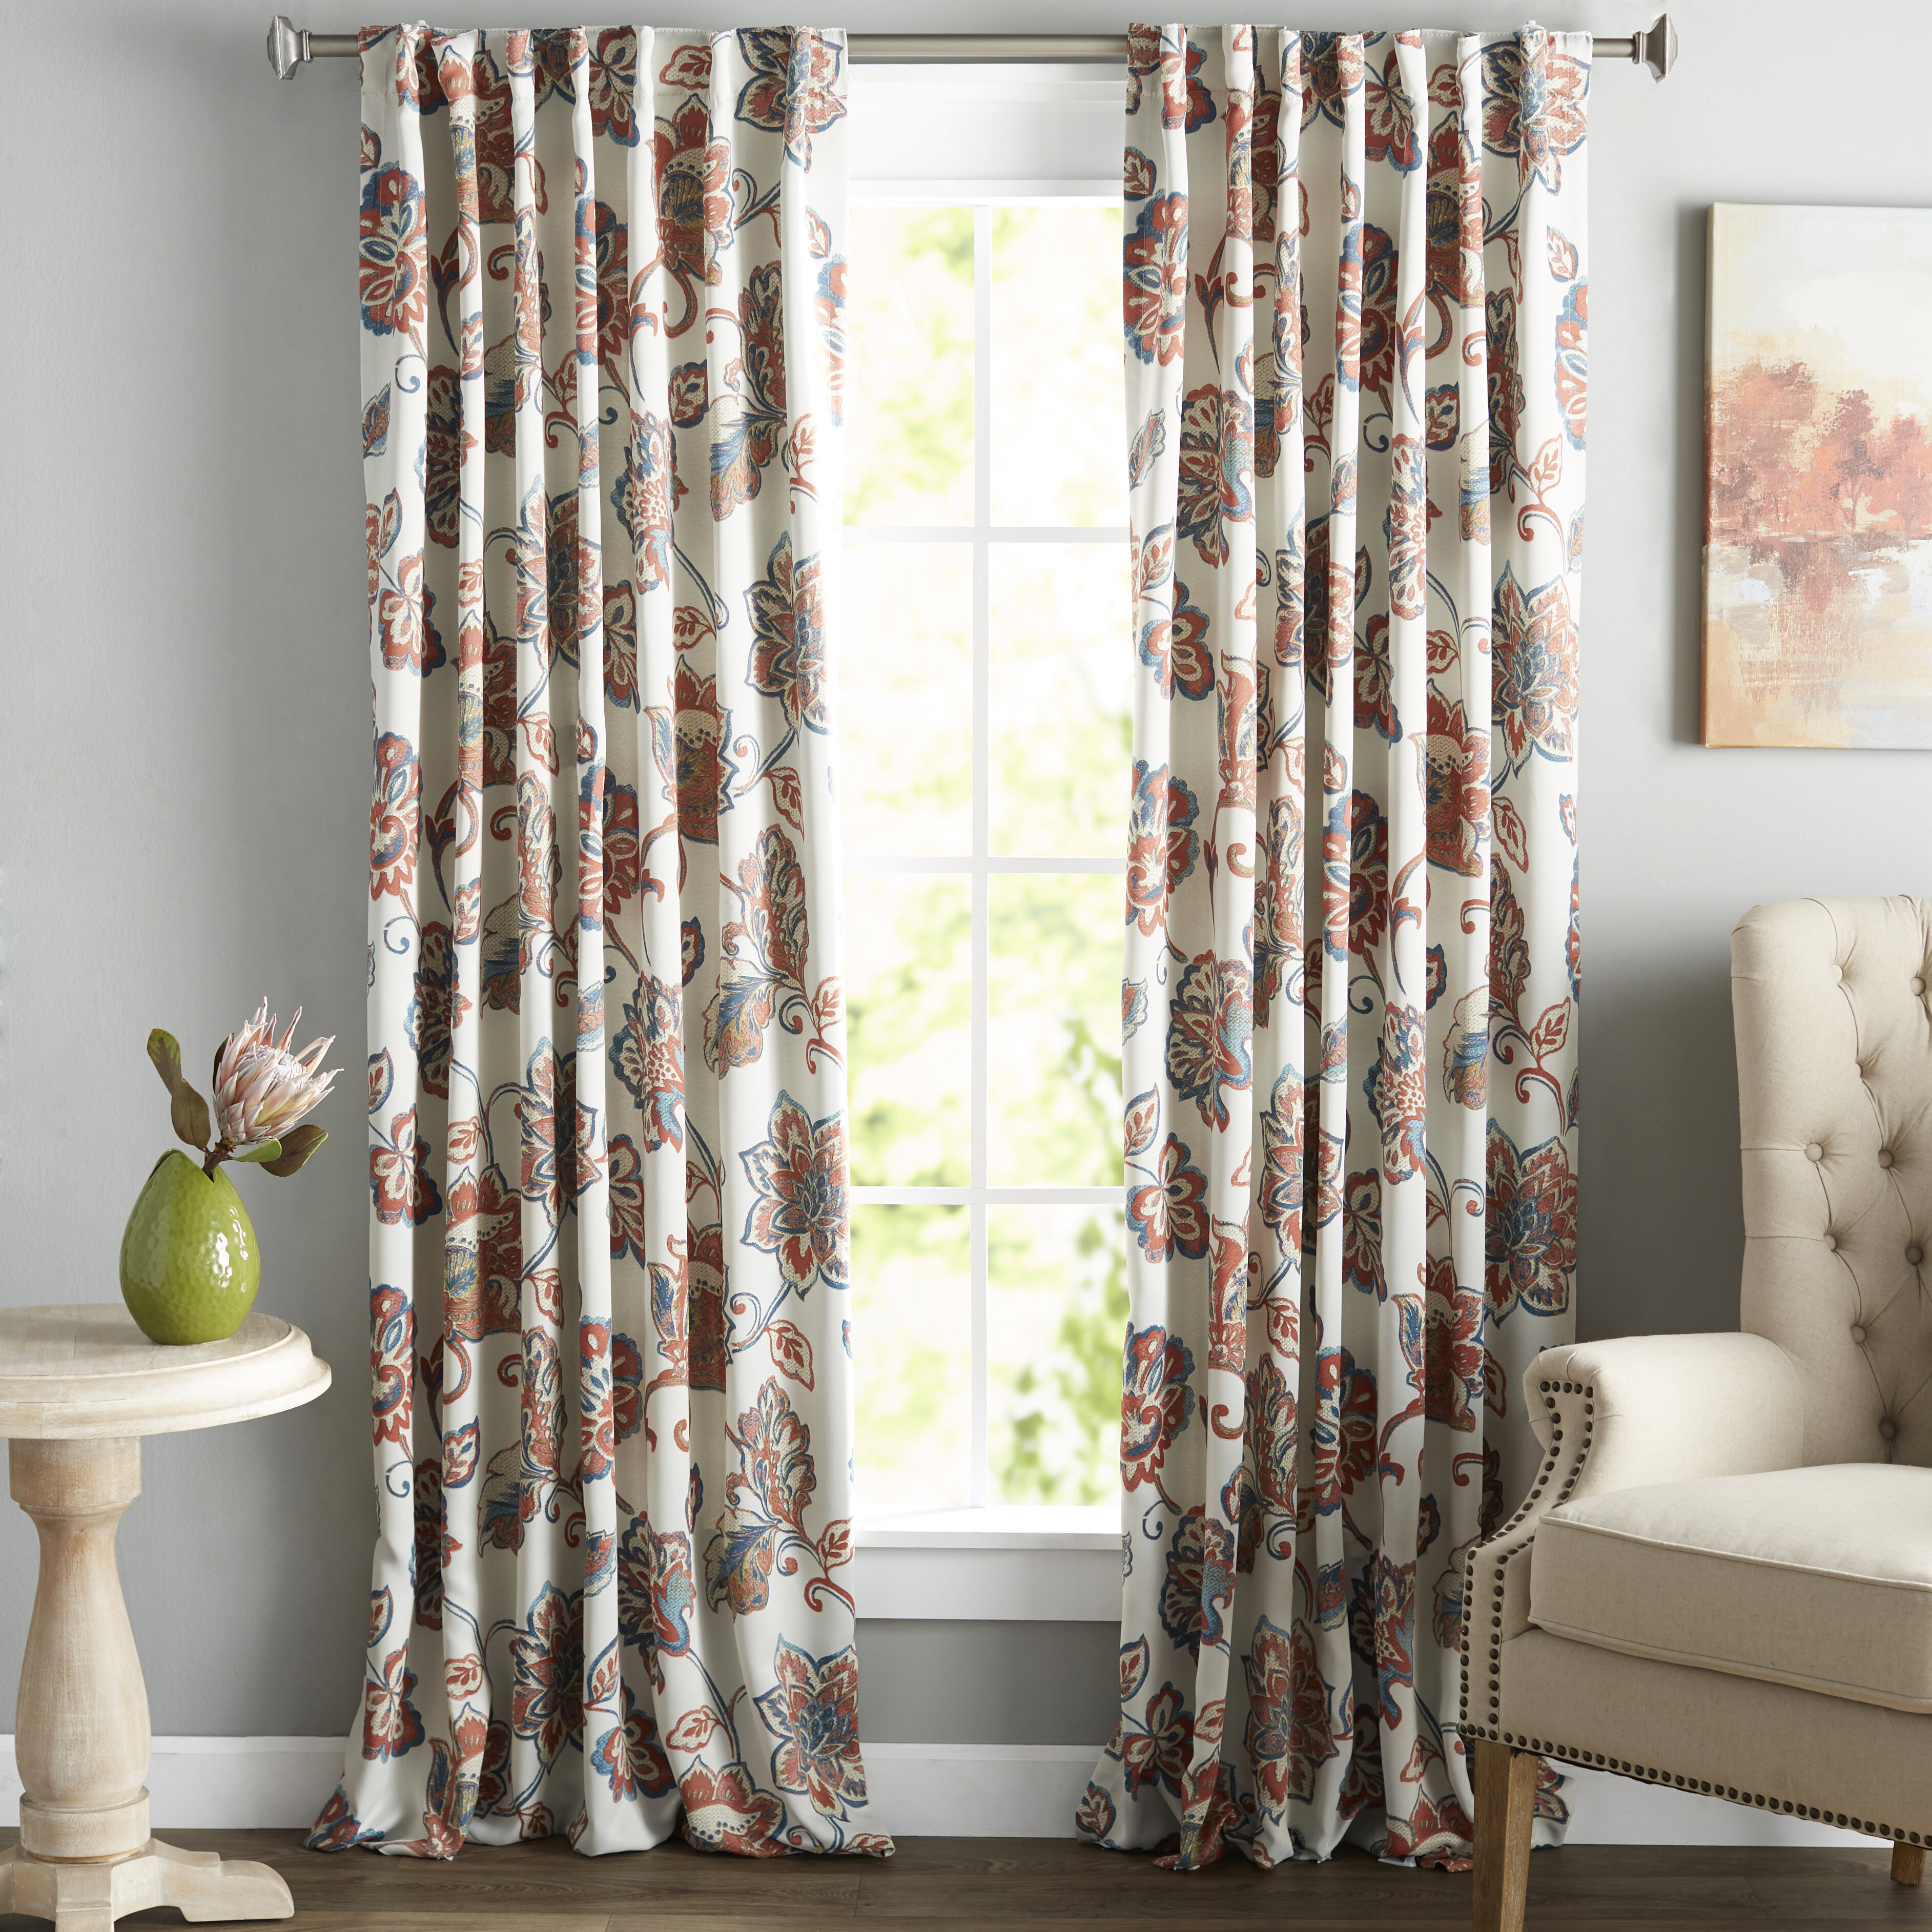 curtains blackout curtain thermal pocket tone windows rugs sailboat nautical panels kids lane pdp birch reviews rod